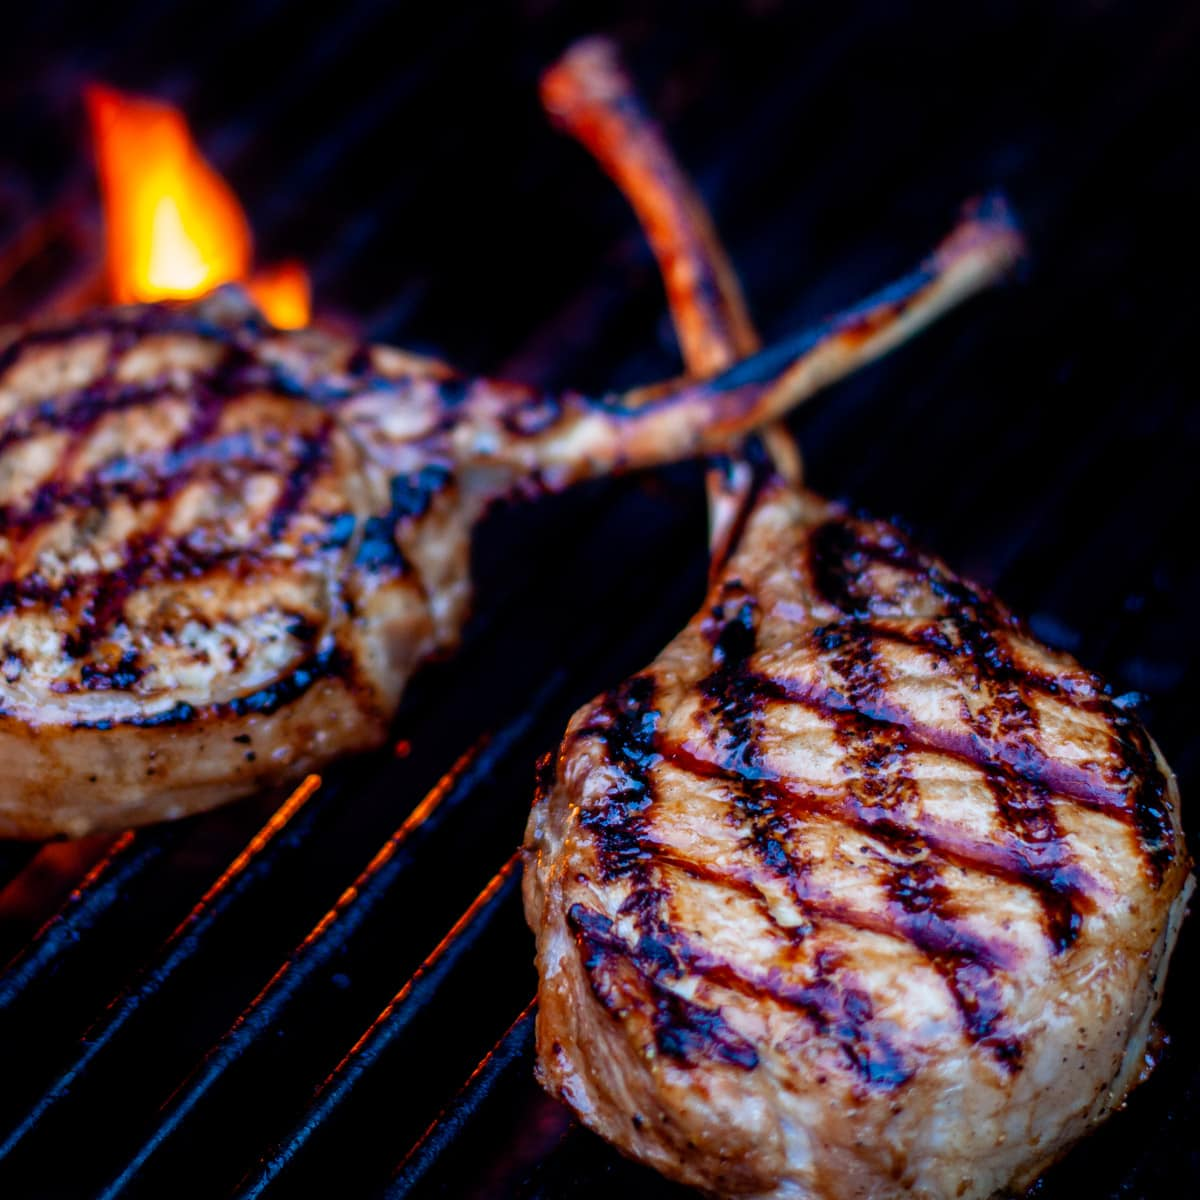 Pork chops shown being grilled over hot flames.